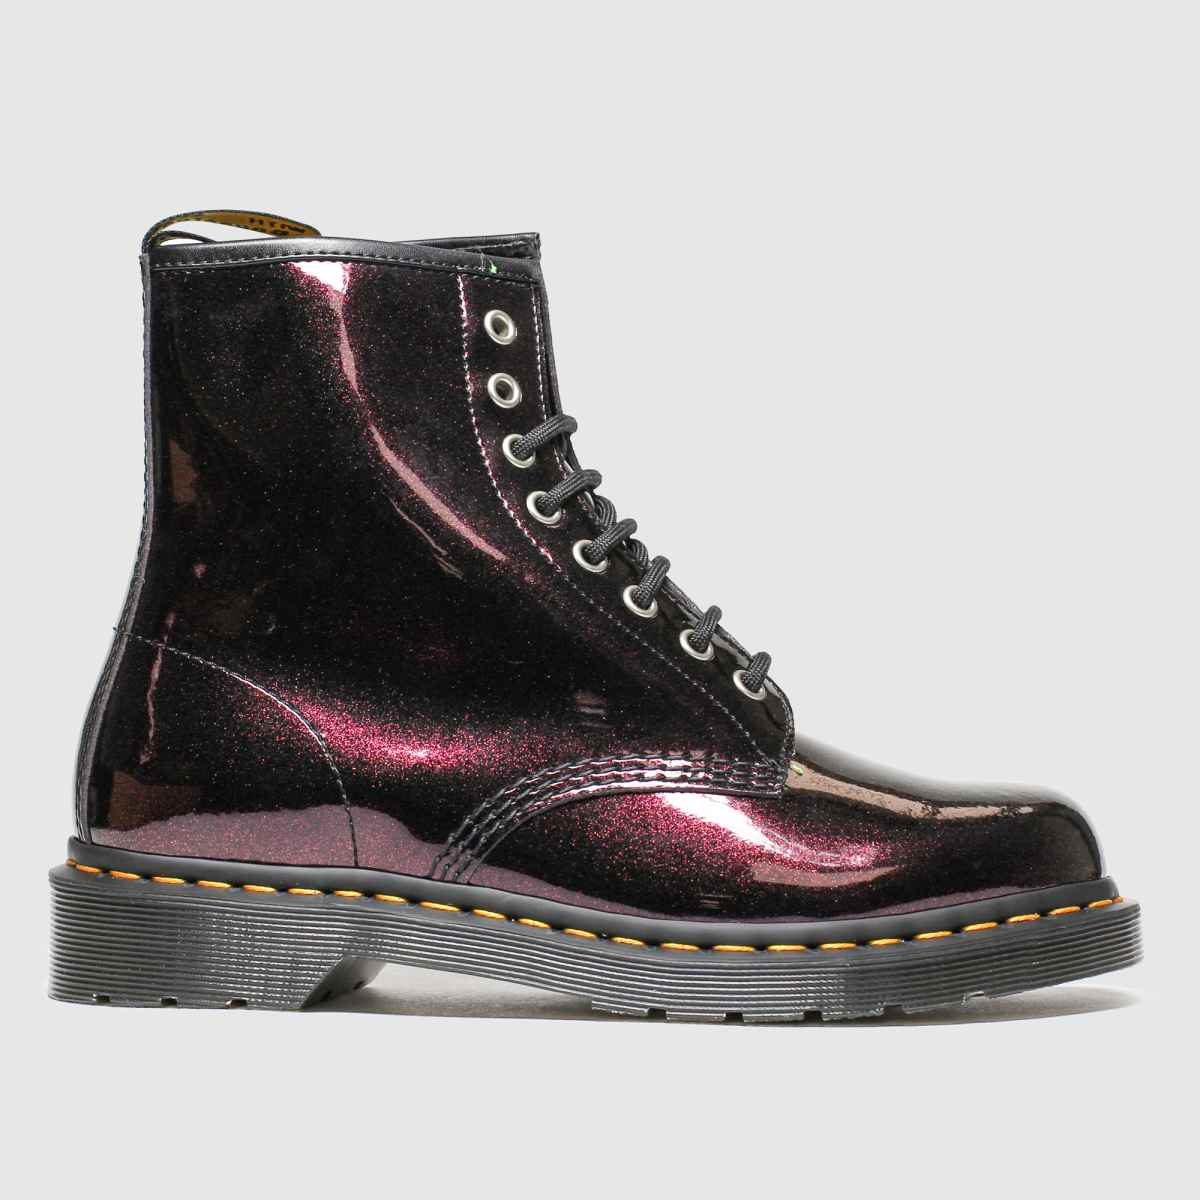 Dr Martens Purple 8 Eye Sparkle Boots